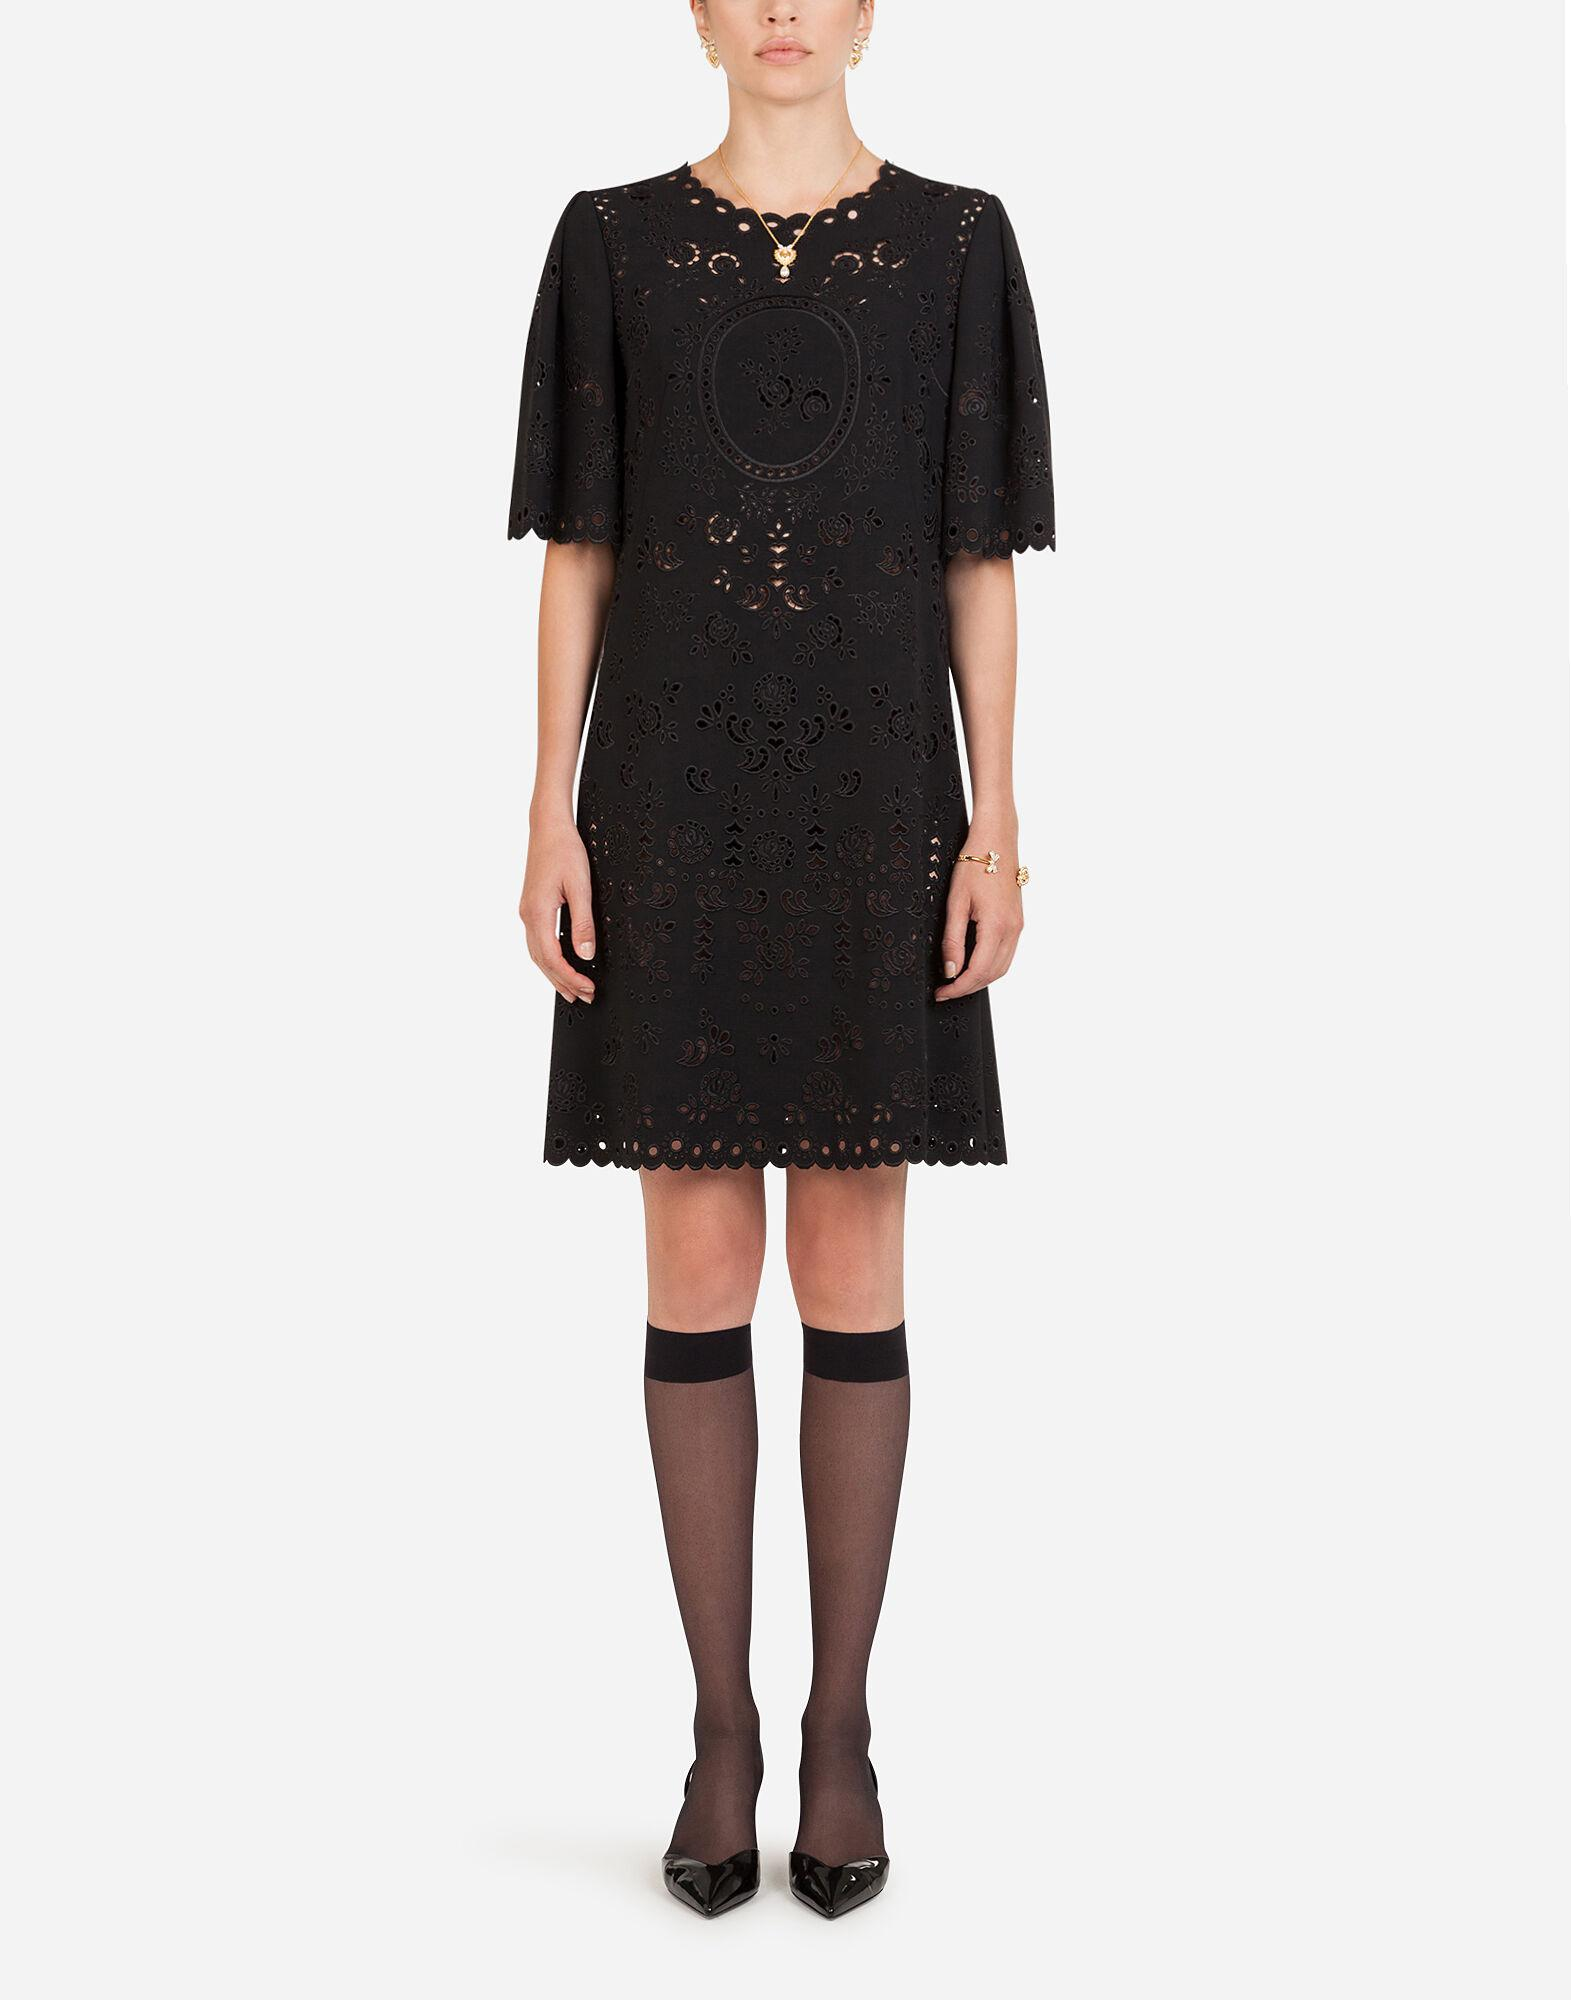 Short cady dress with cut-out detailing